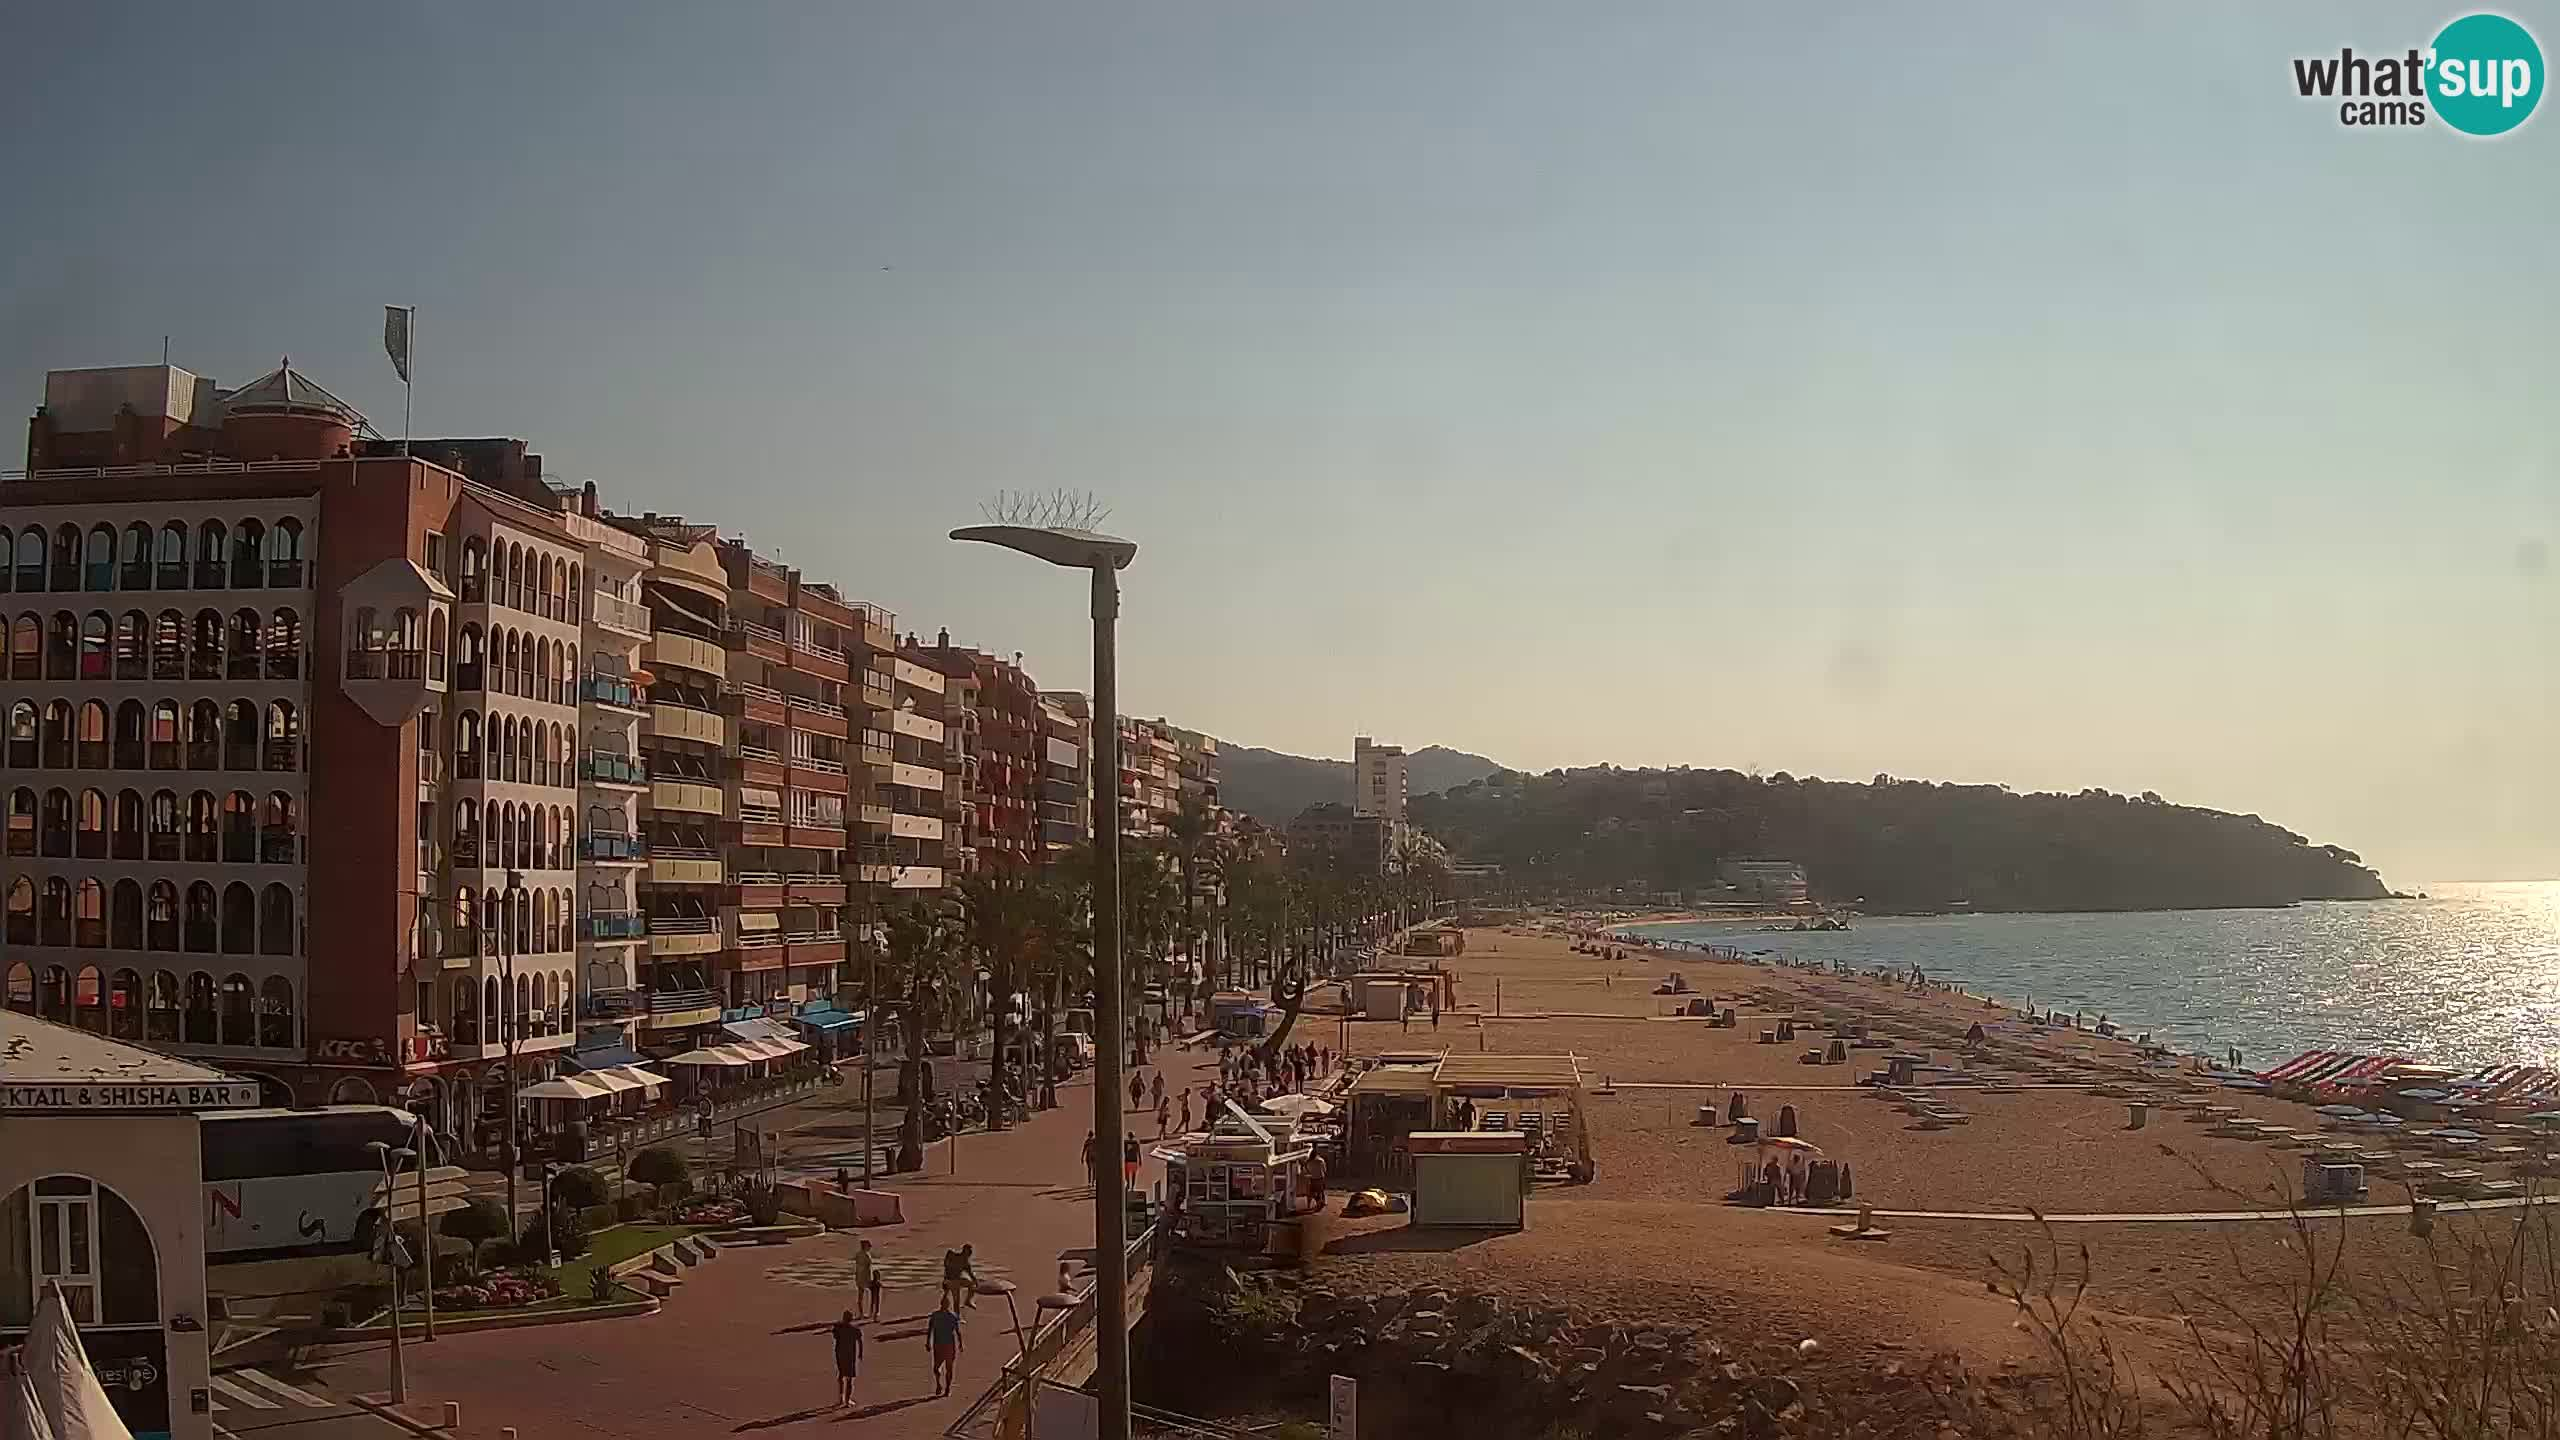 lloret de mar in diretta webcam e hotel lloret de mar spagna meteo lloret de mar. Black Bedroom Furniture Sets. Home Design Ideas